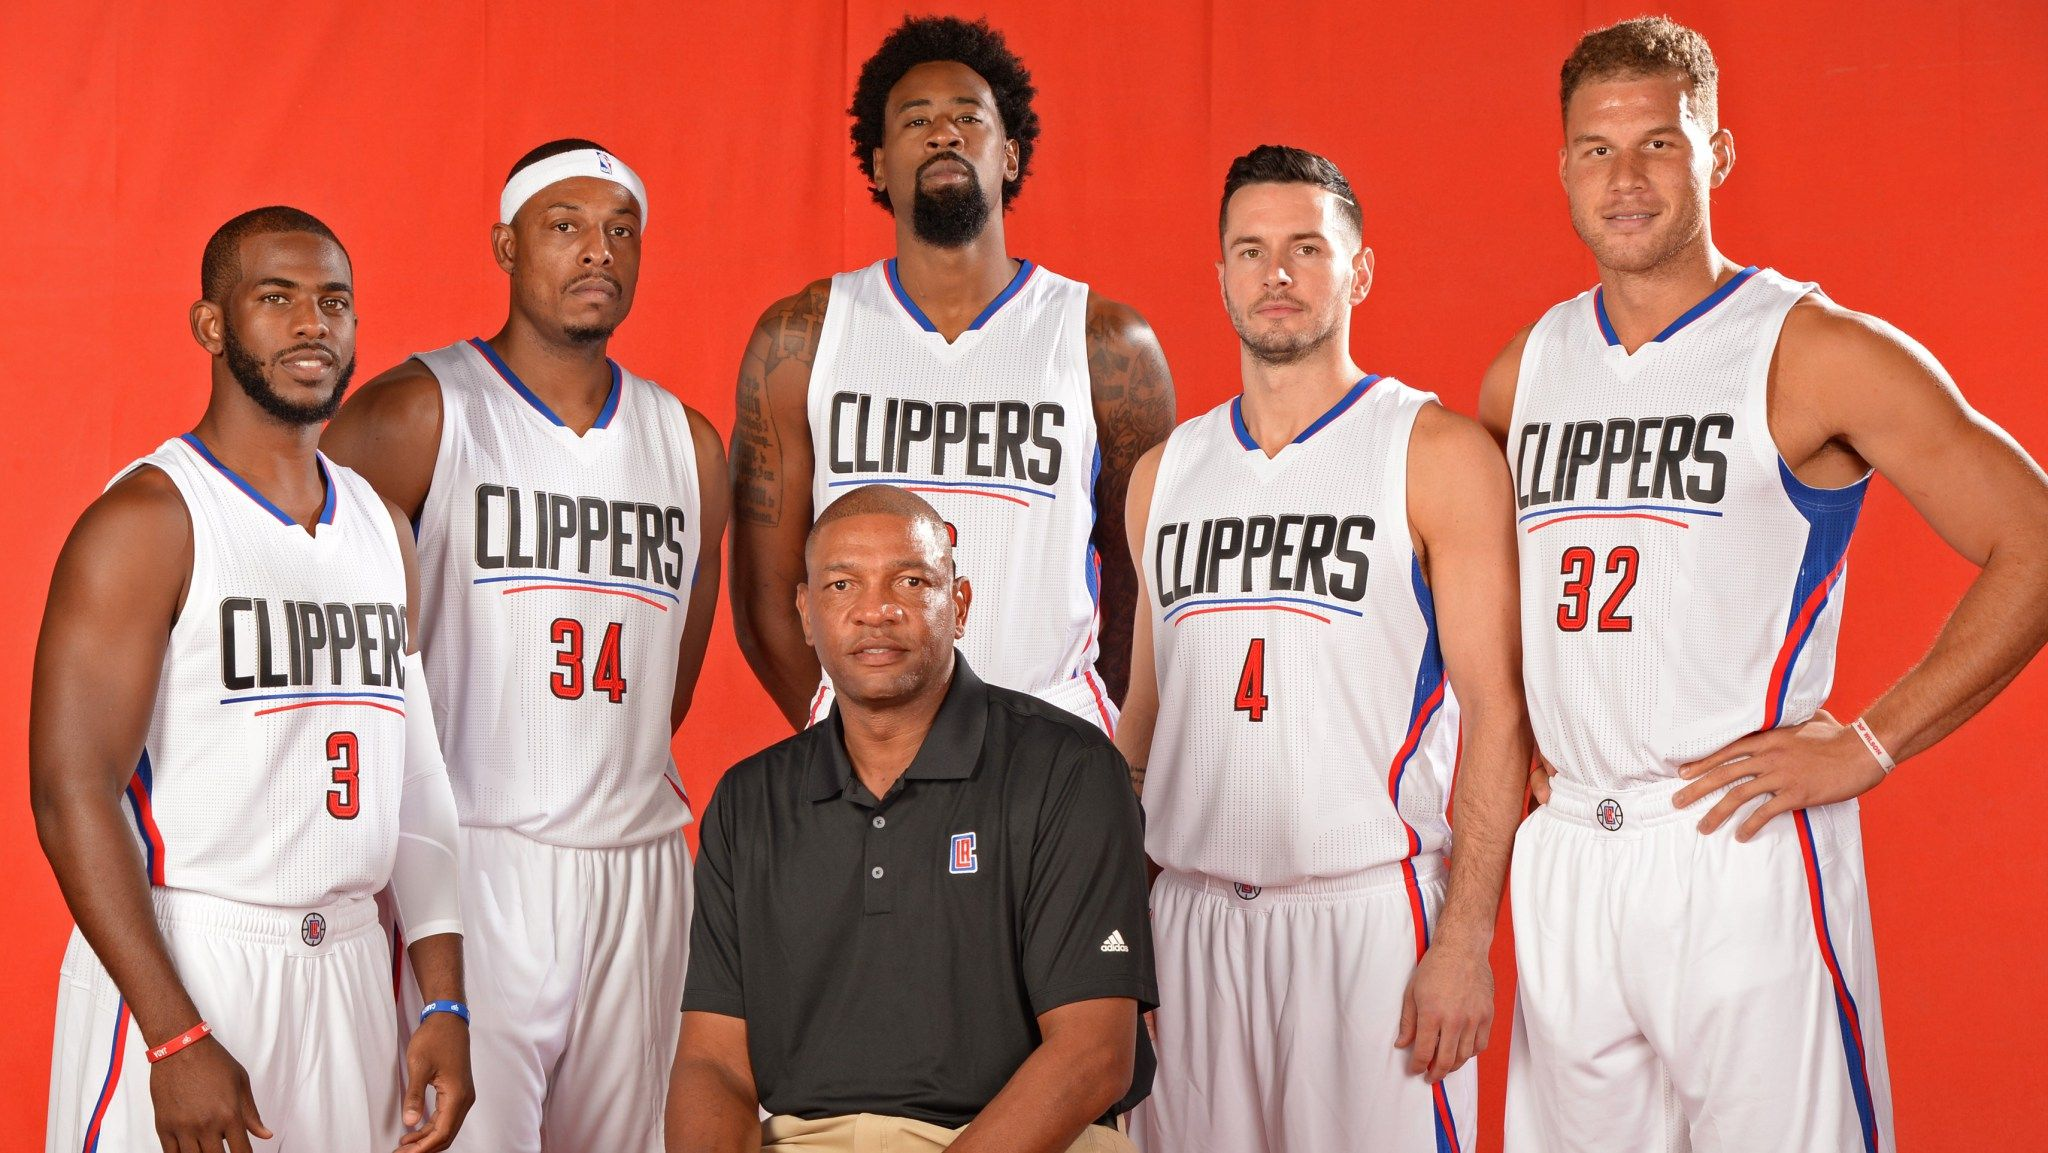 The Edge Of Glory Will The Clippers Make The Leap Or Hit Reset With Images Nba League Pass Nba Tv Clippers